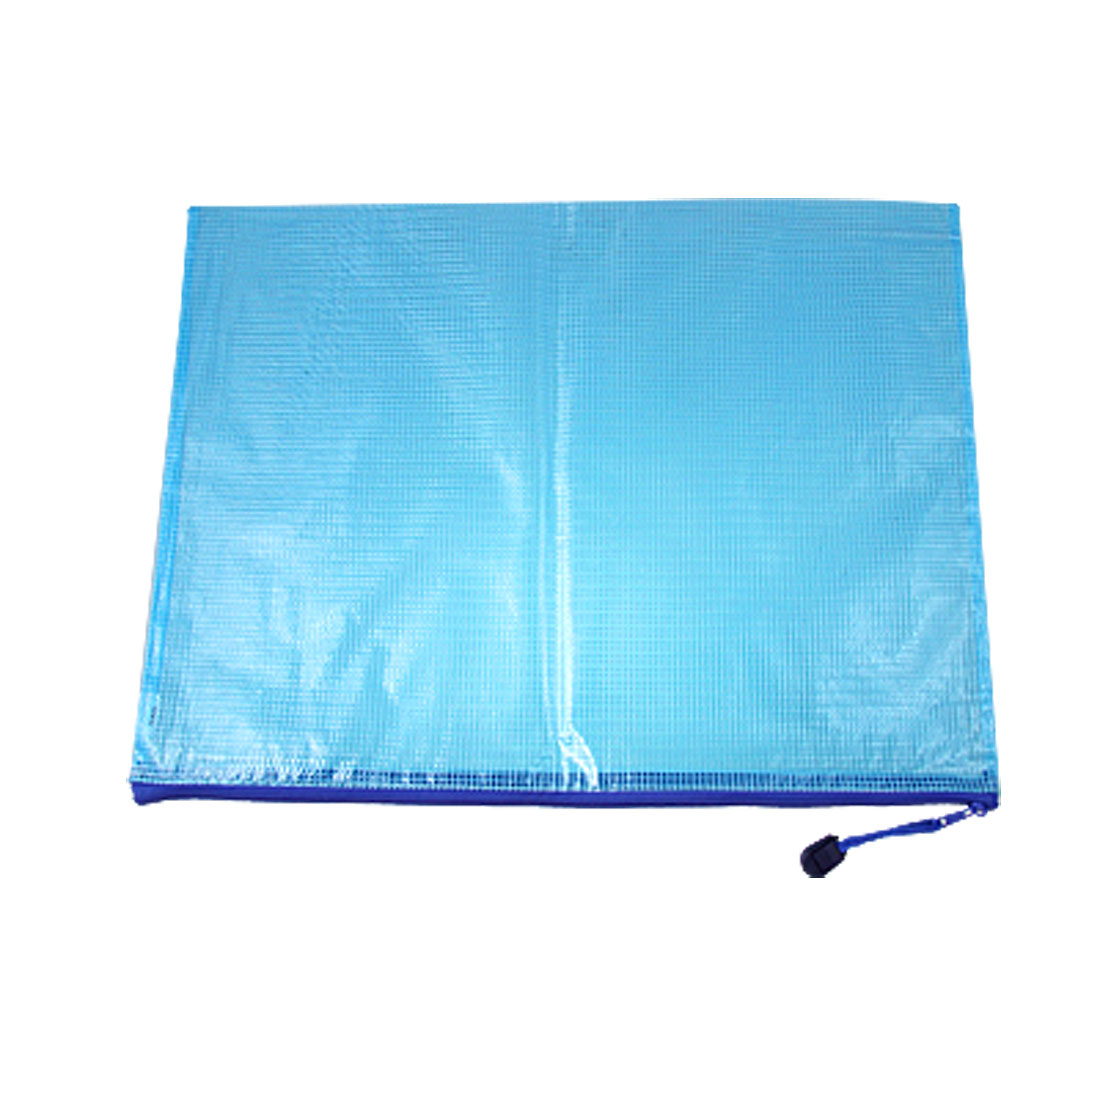 Blue Zipper Closure B4 Document File Holder Plastic Bag